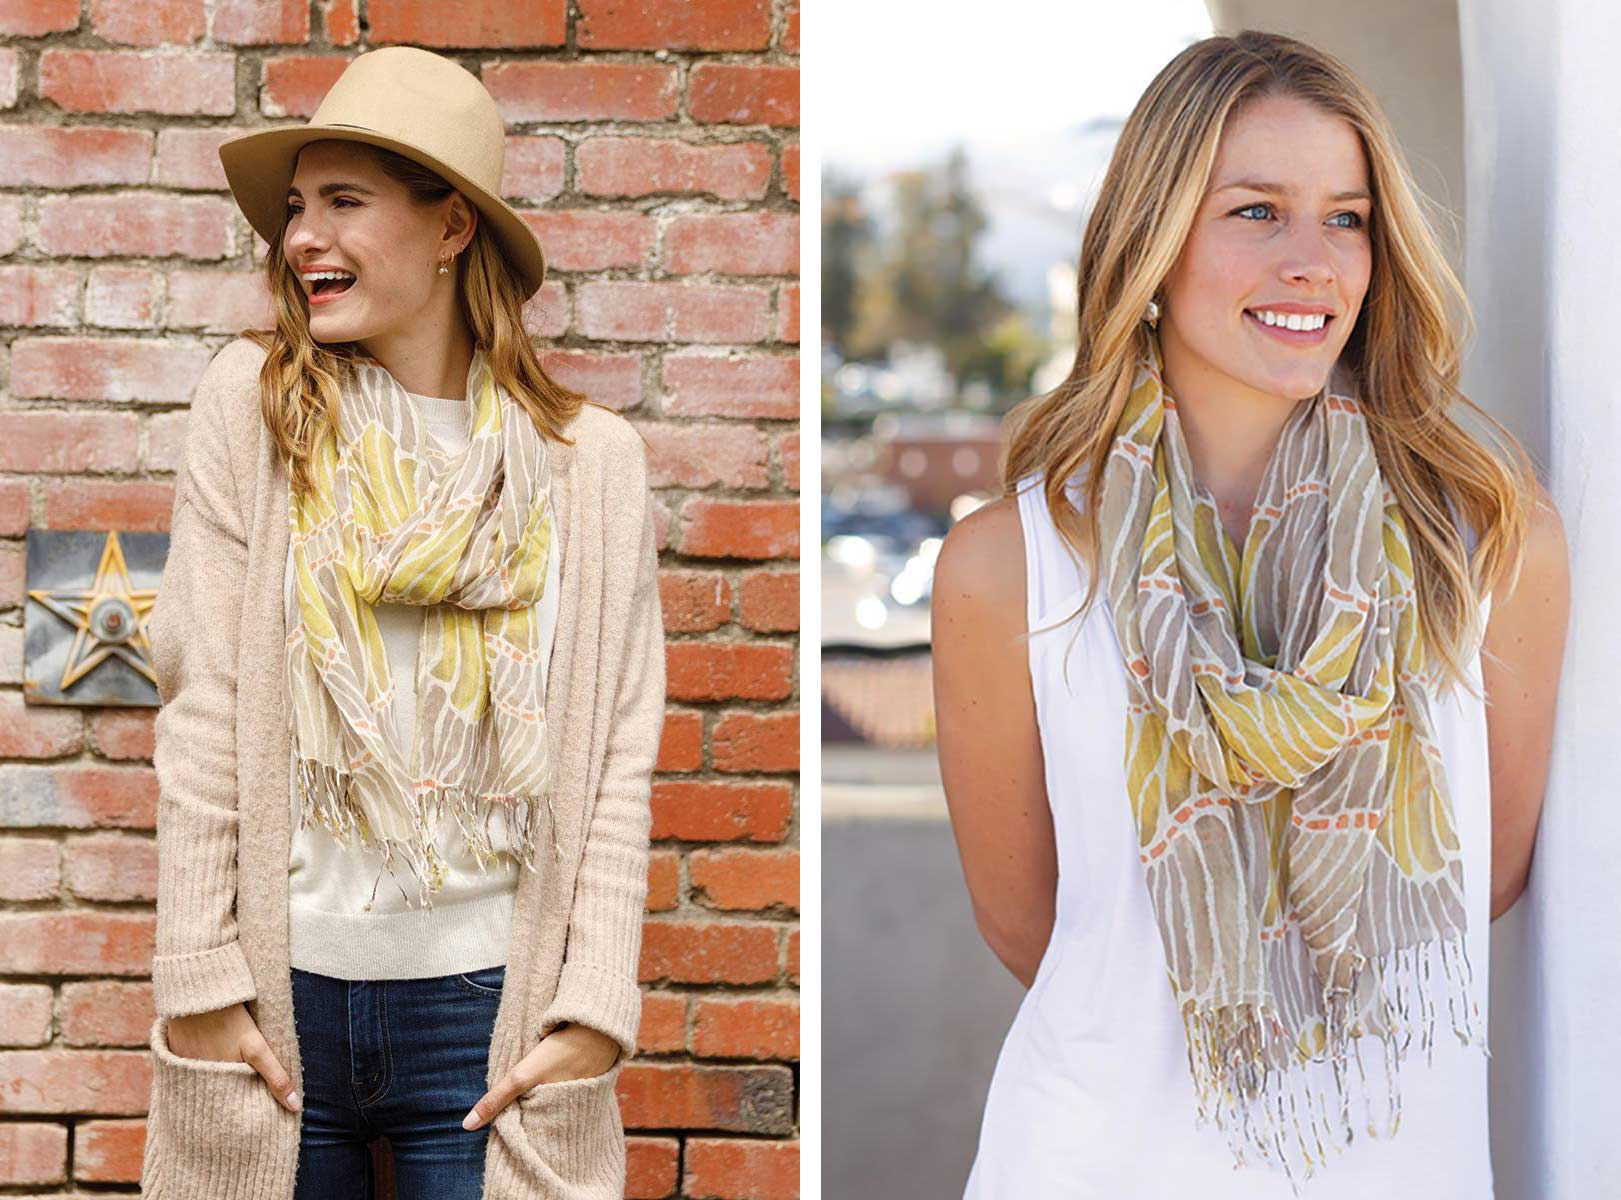 A comparison of one woman wearing a yellow printed scarf with a sweater and cardigan vs. another woman wearing the same scarf with a white dress